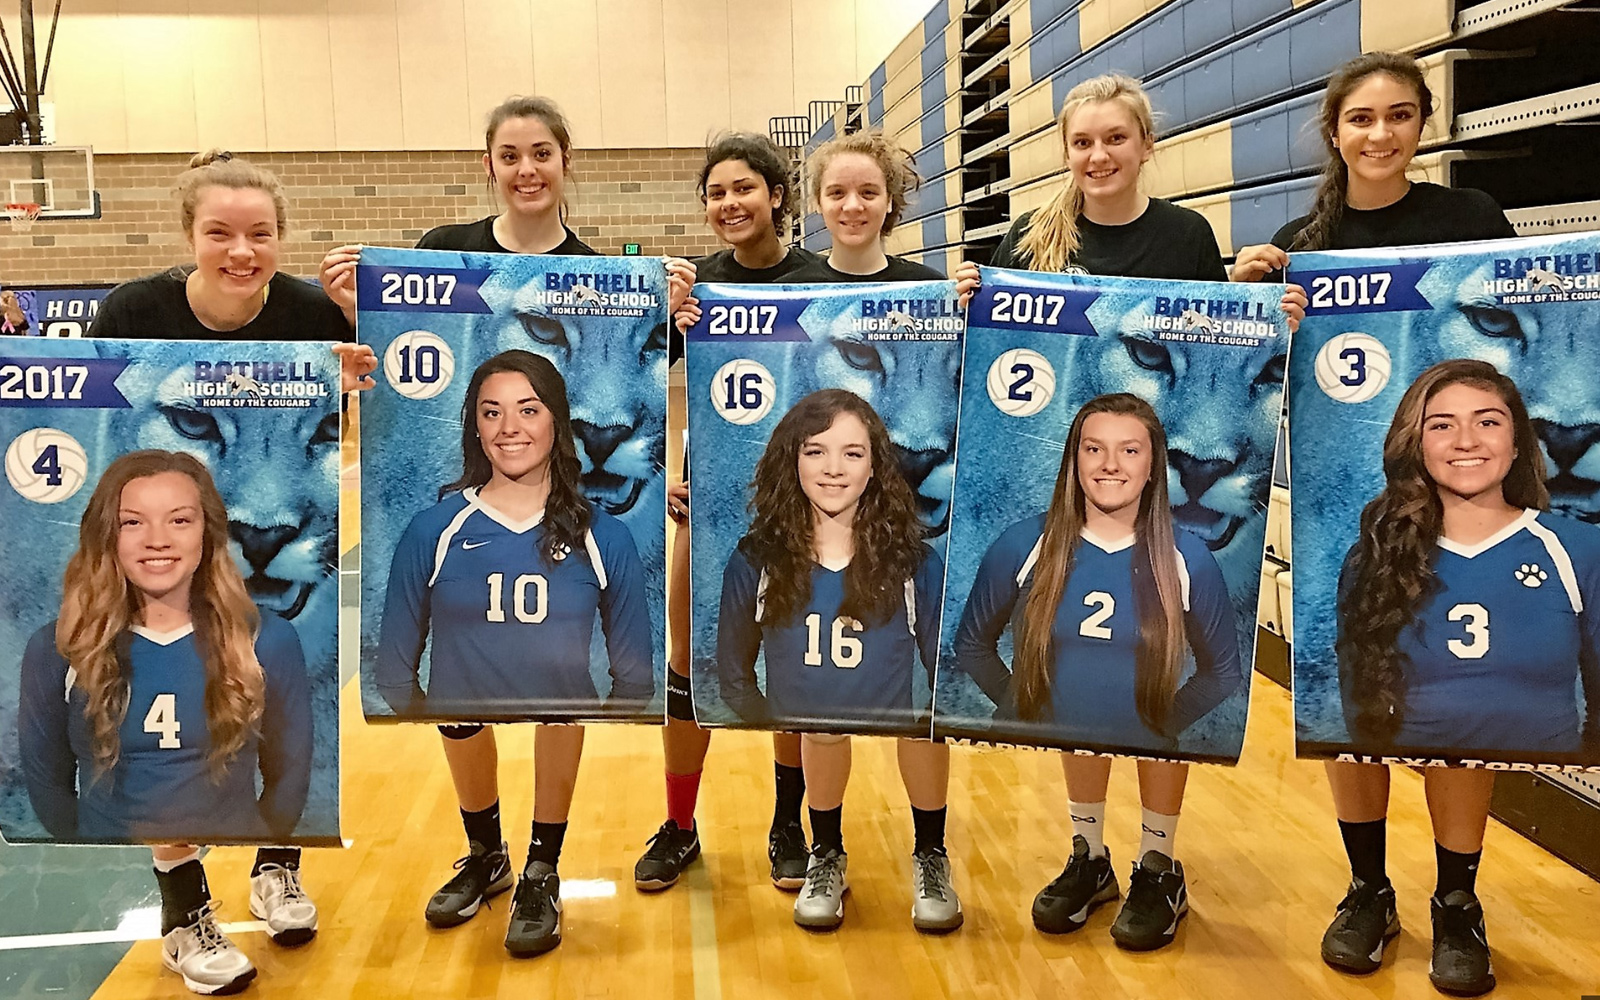 Sweet photo of the seniors with their banners. This is why I love my job!